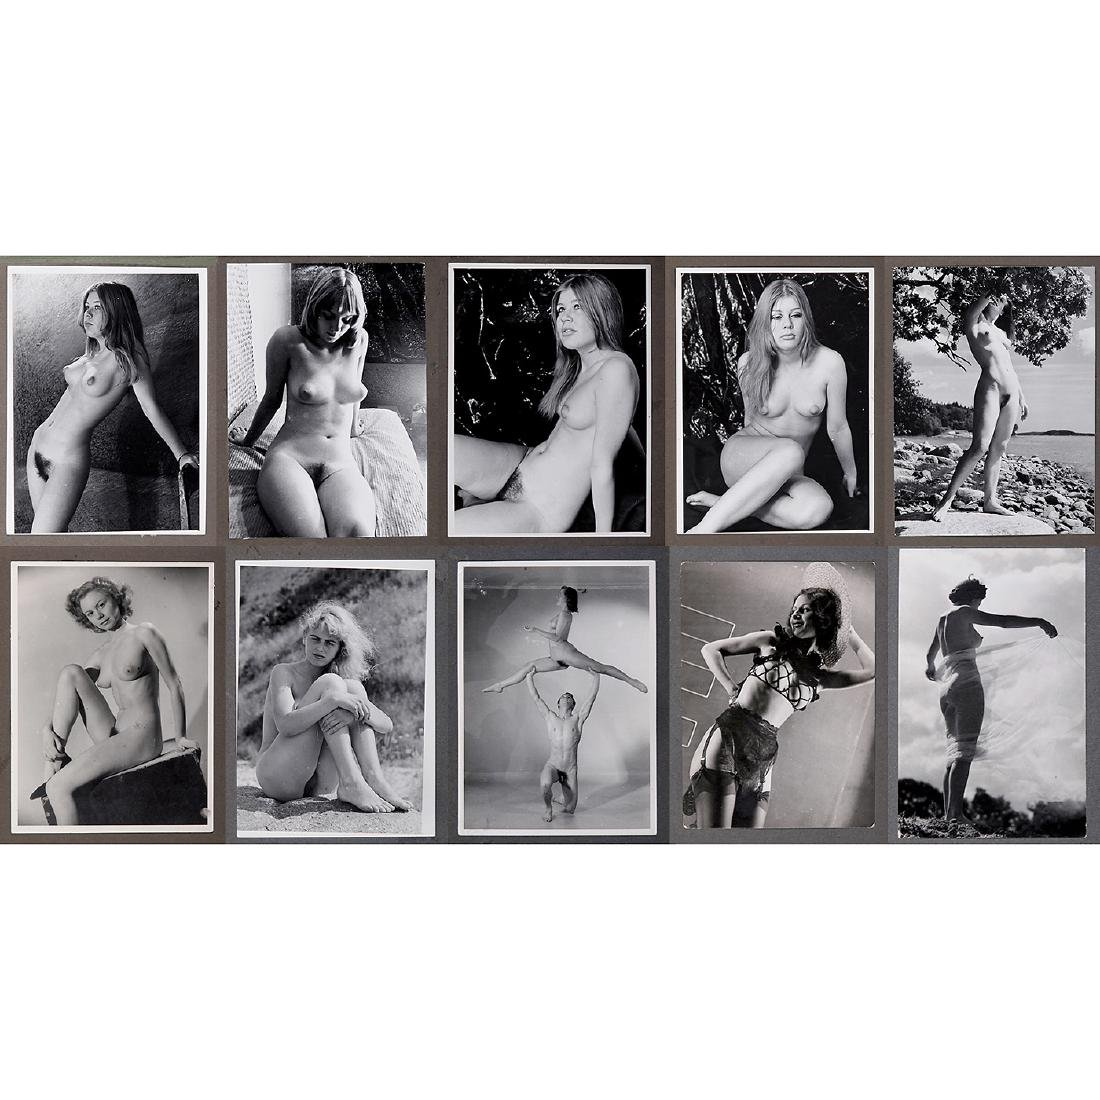 Nude Photographs, c. 1955-65